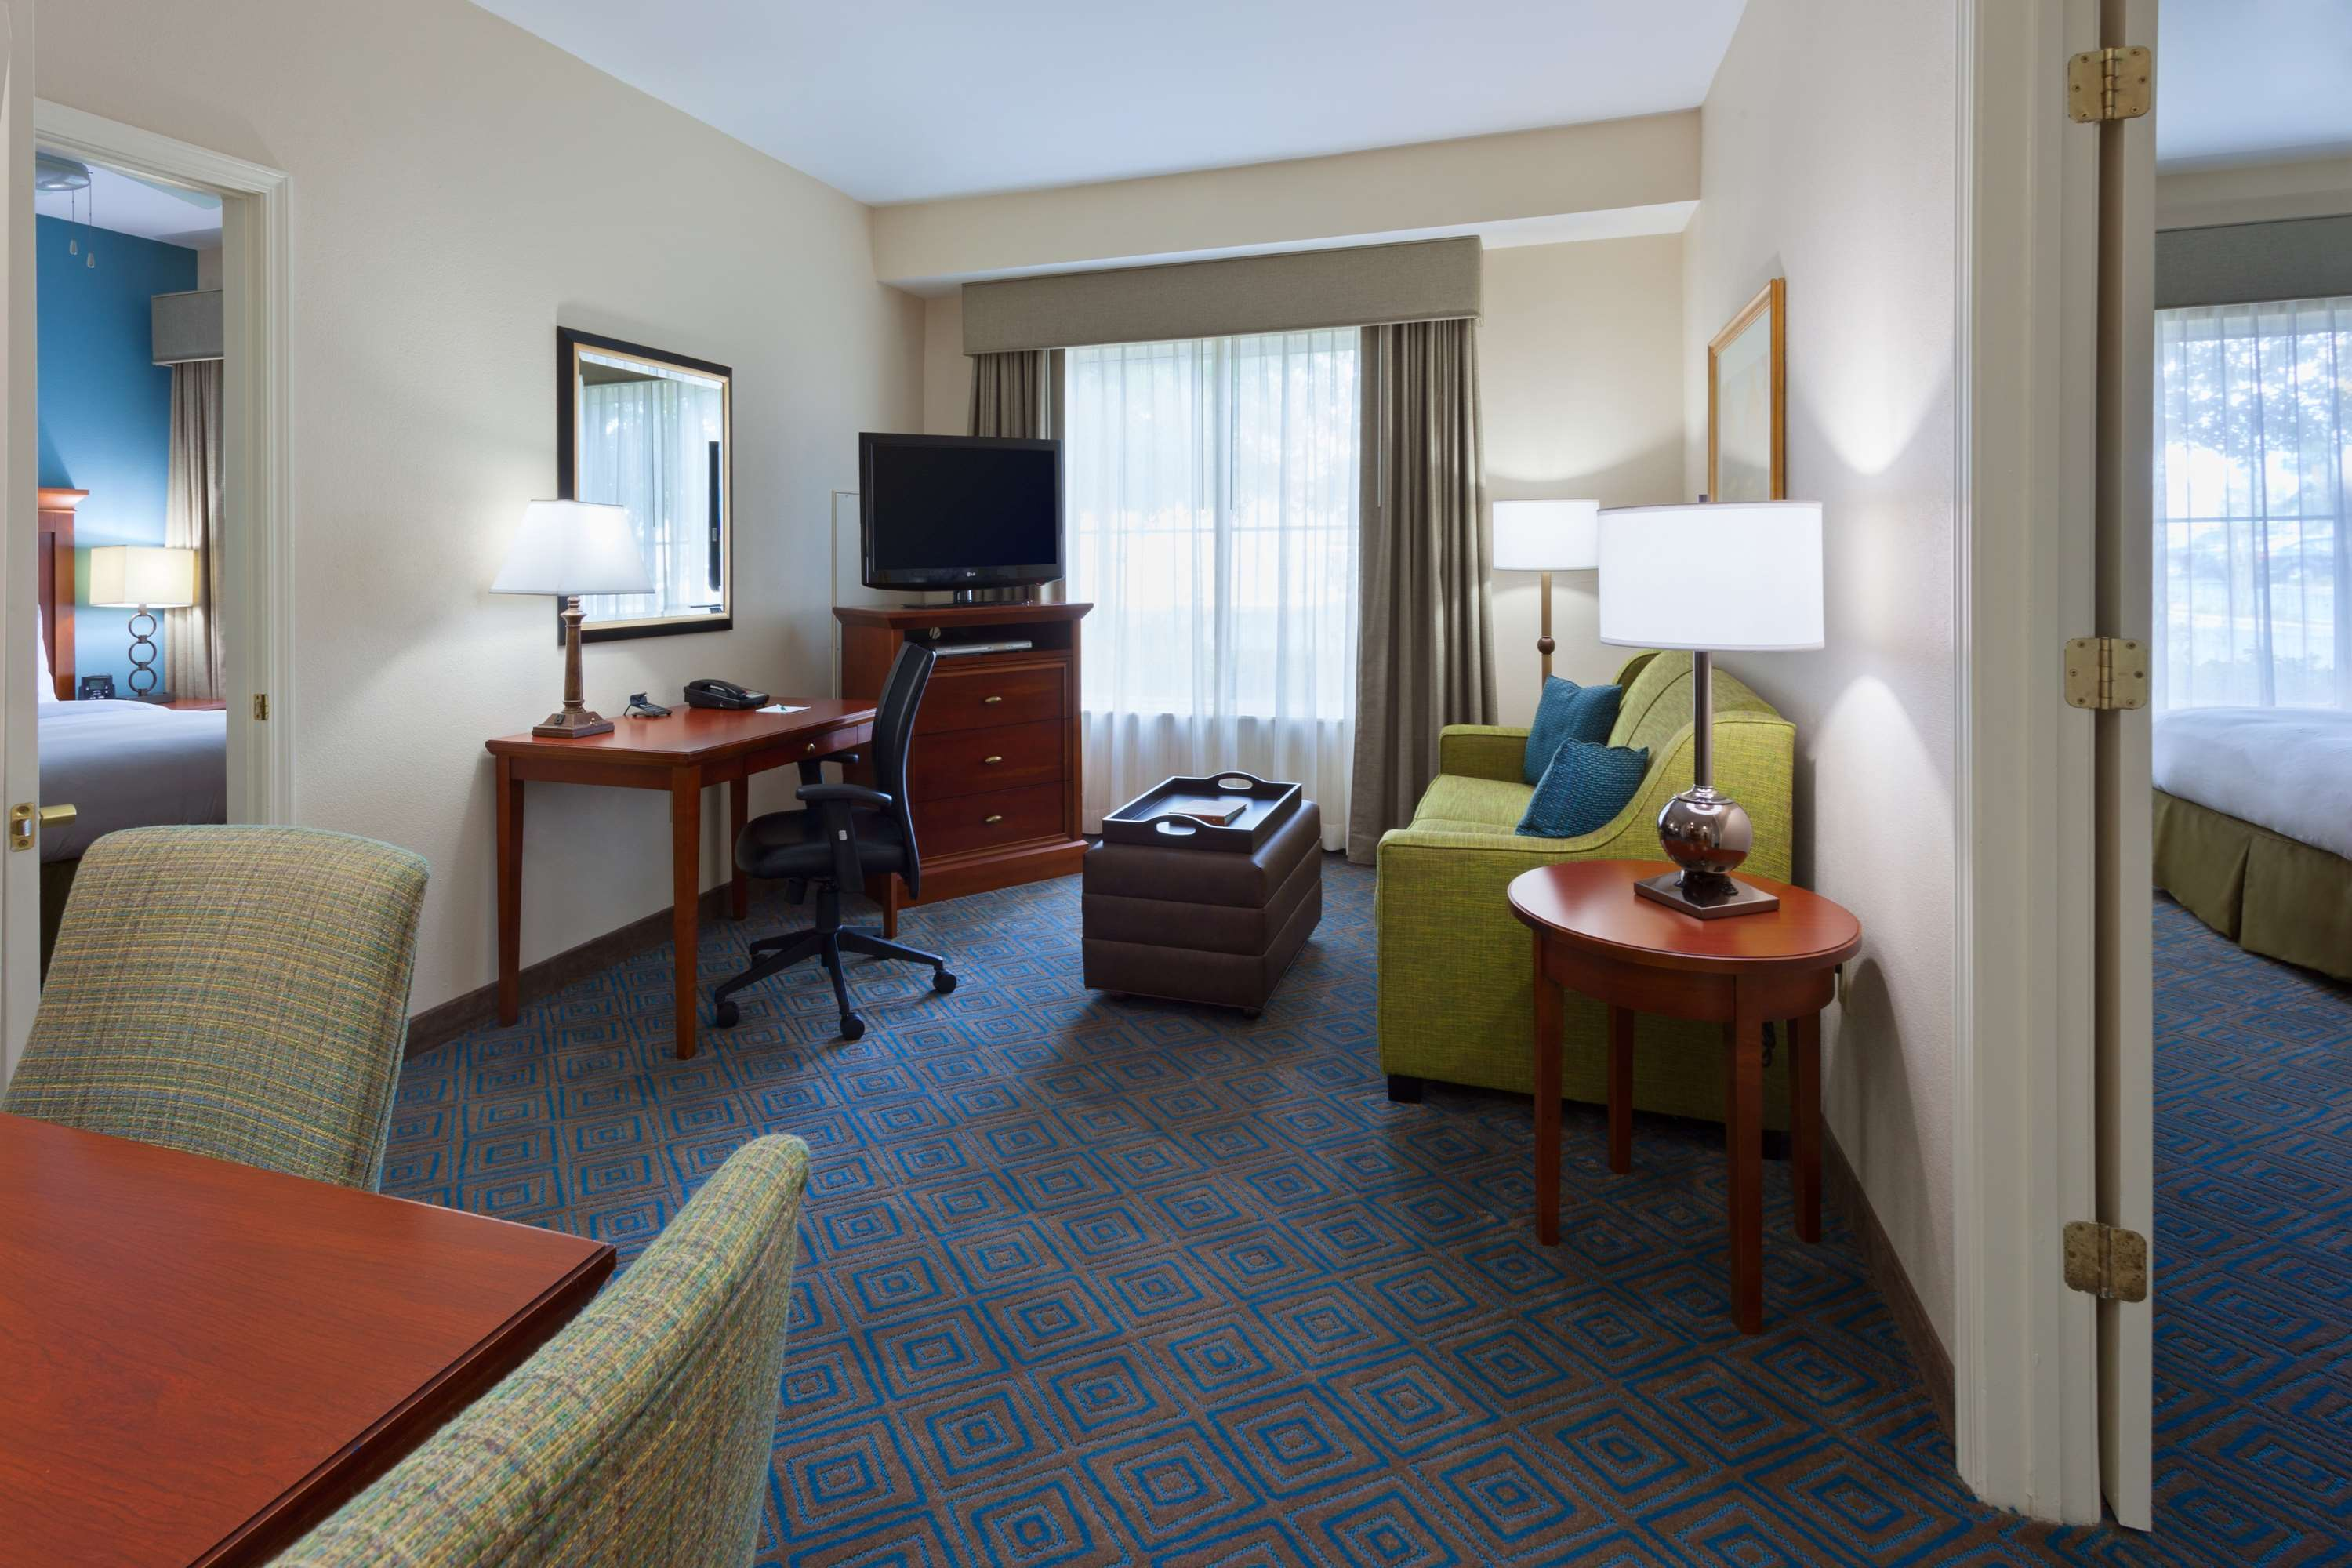 Homewood Suites by Hilton Gainesville image 5